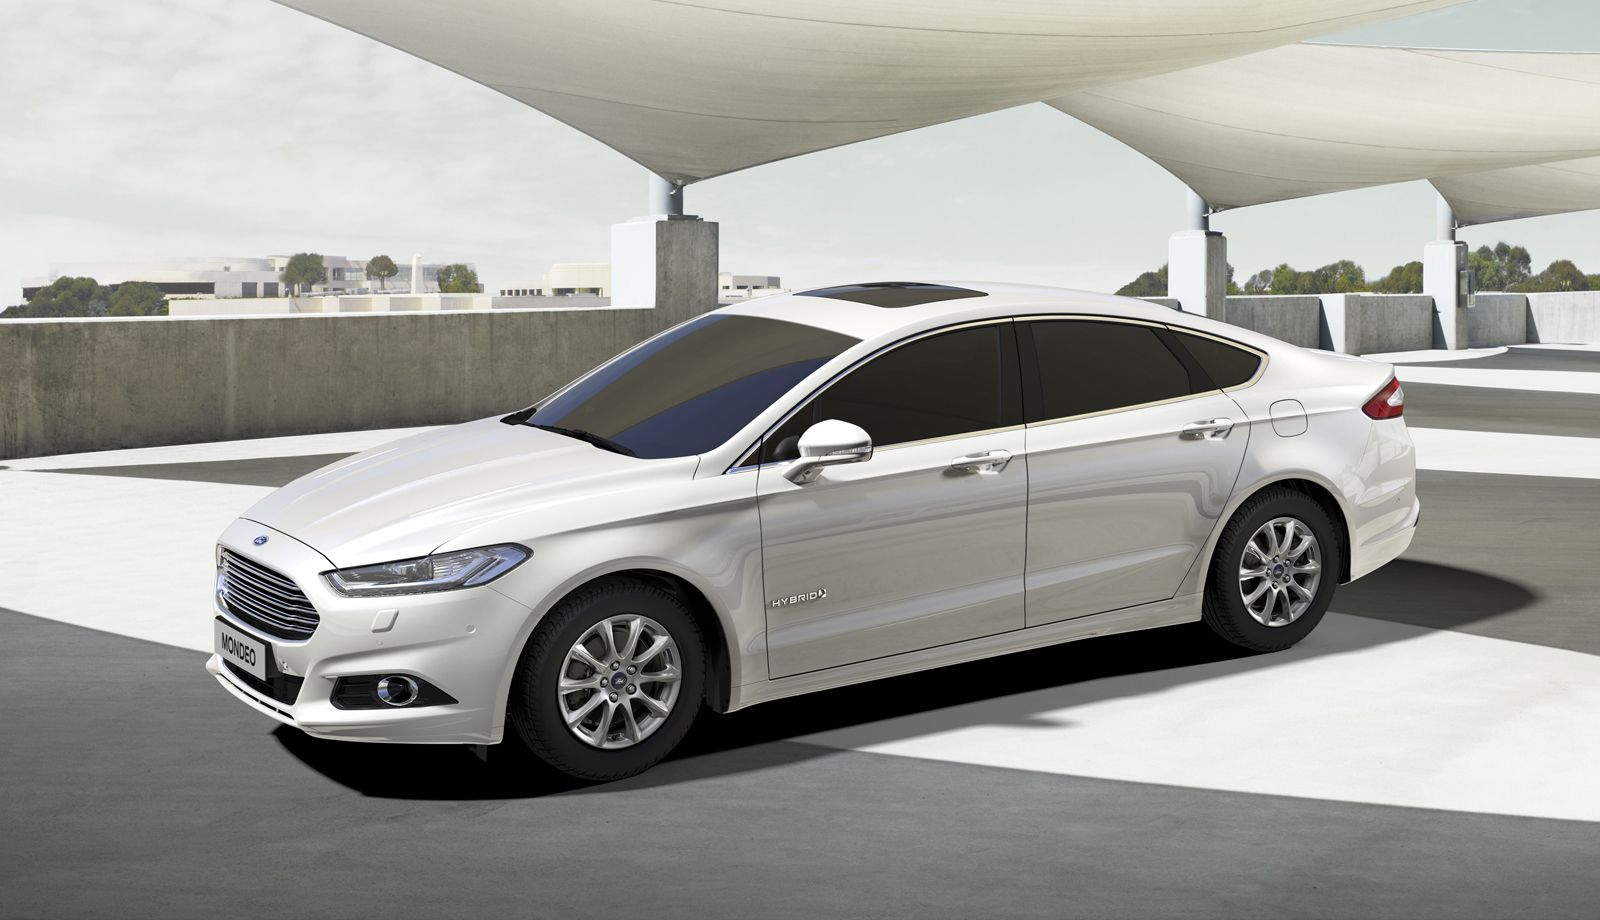 2015 Ford Mondeo Coupe Desktop Backgrounds Http Wallsauto Com